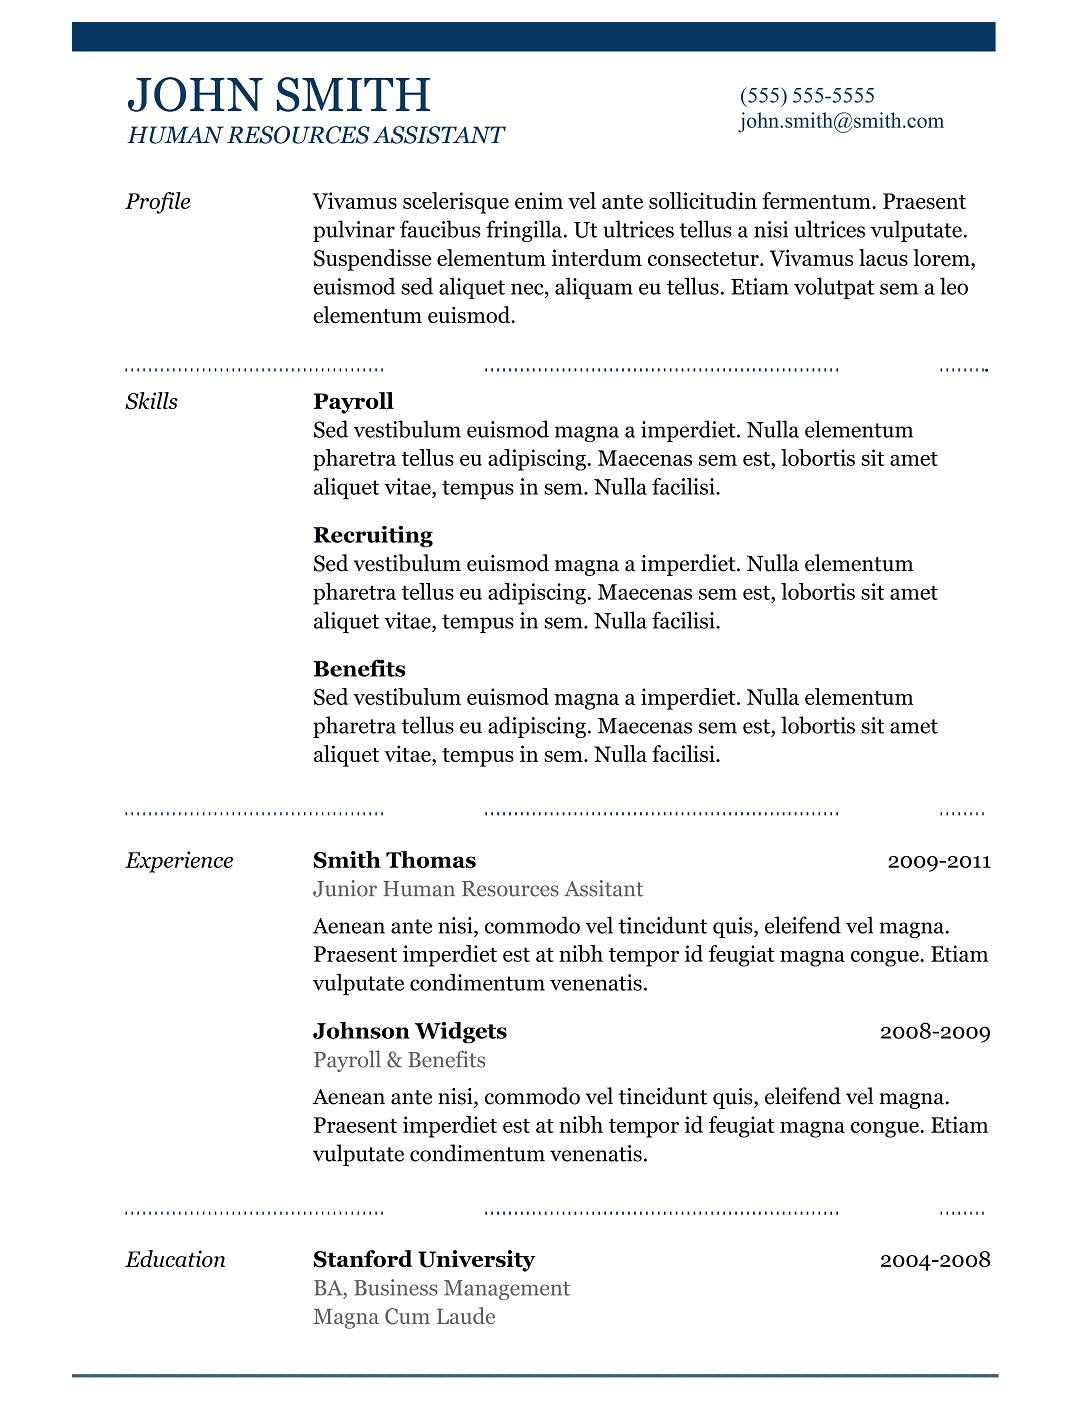 resume Free Resume Templates To Download 9 best free resume templates download for freshers freshers